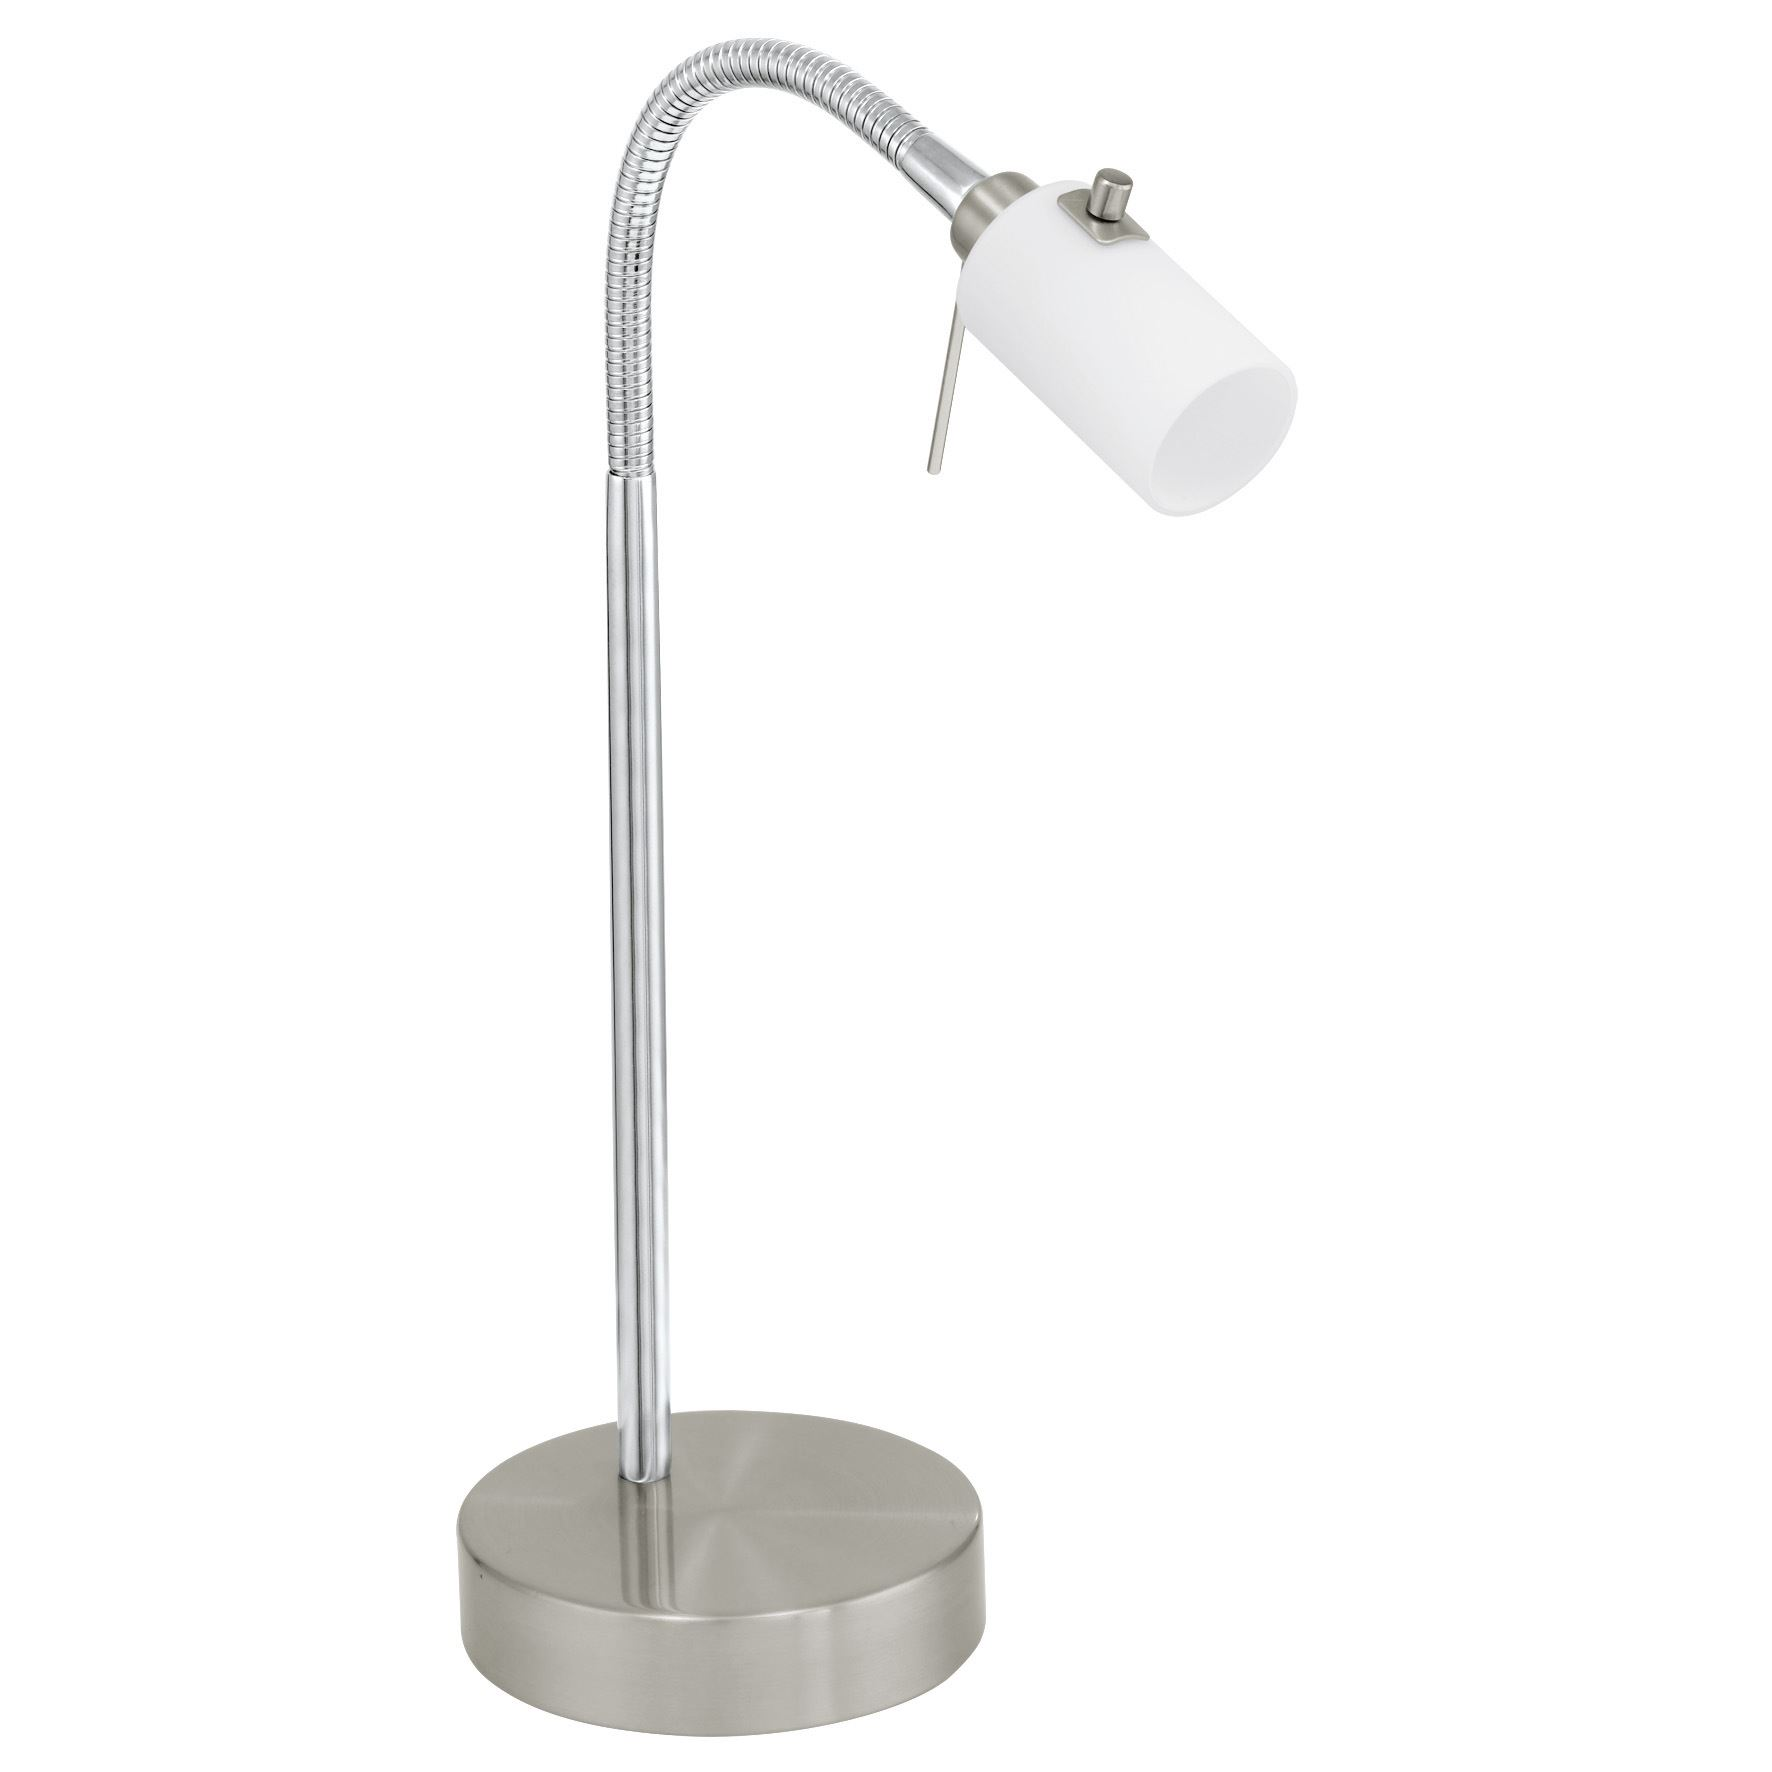 Benga Table Lamp Opal Glass White Shade 1 Light G9 Touchdimmer